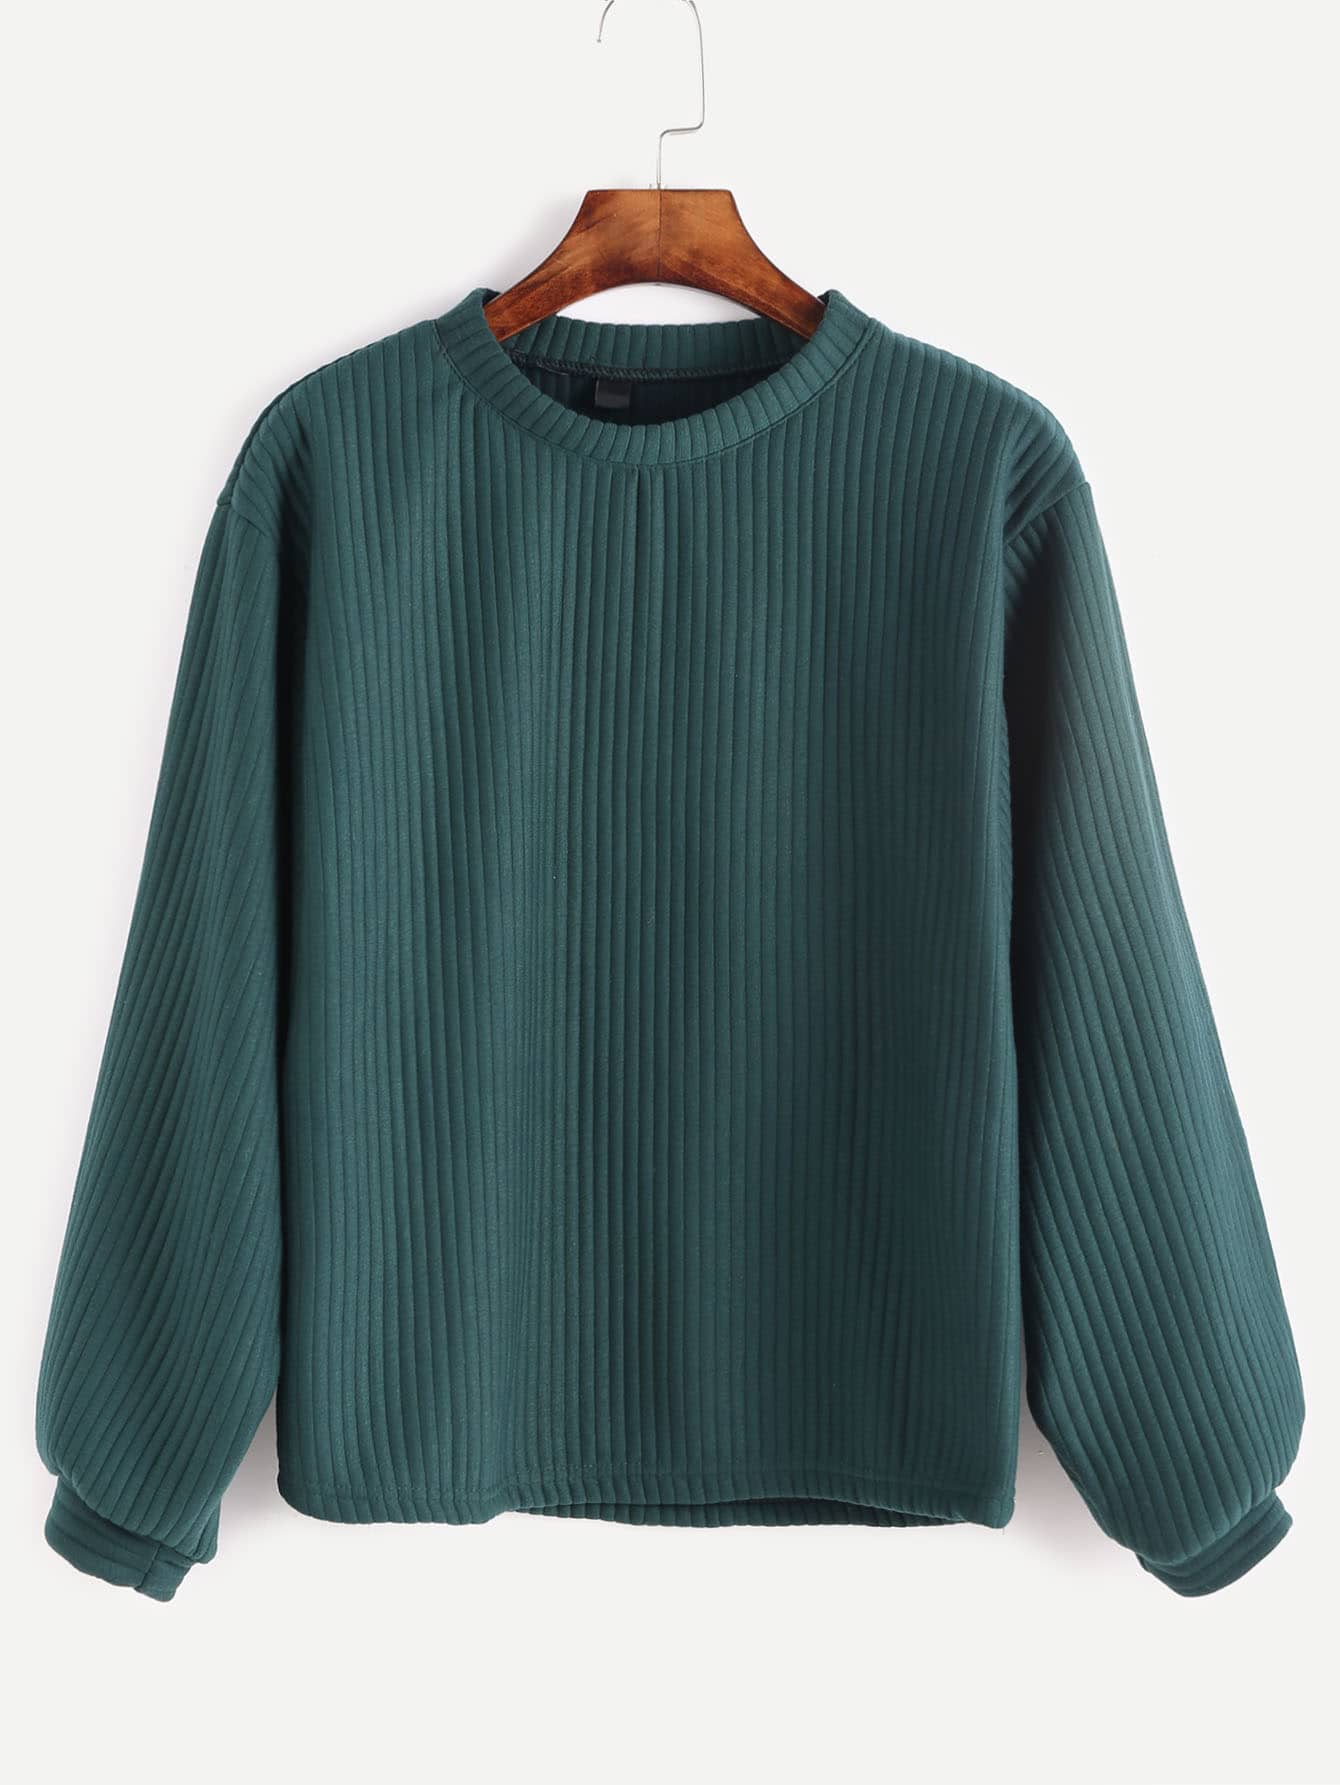 Peacock Green Ribbed Sweatshirt